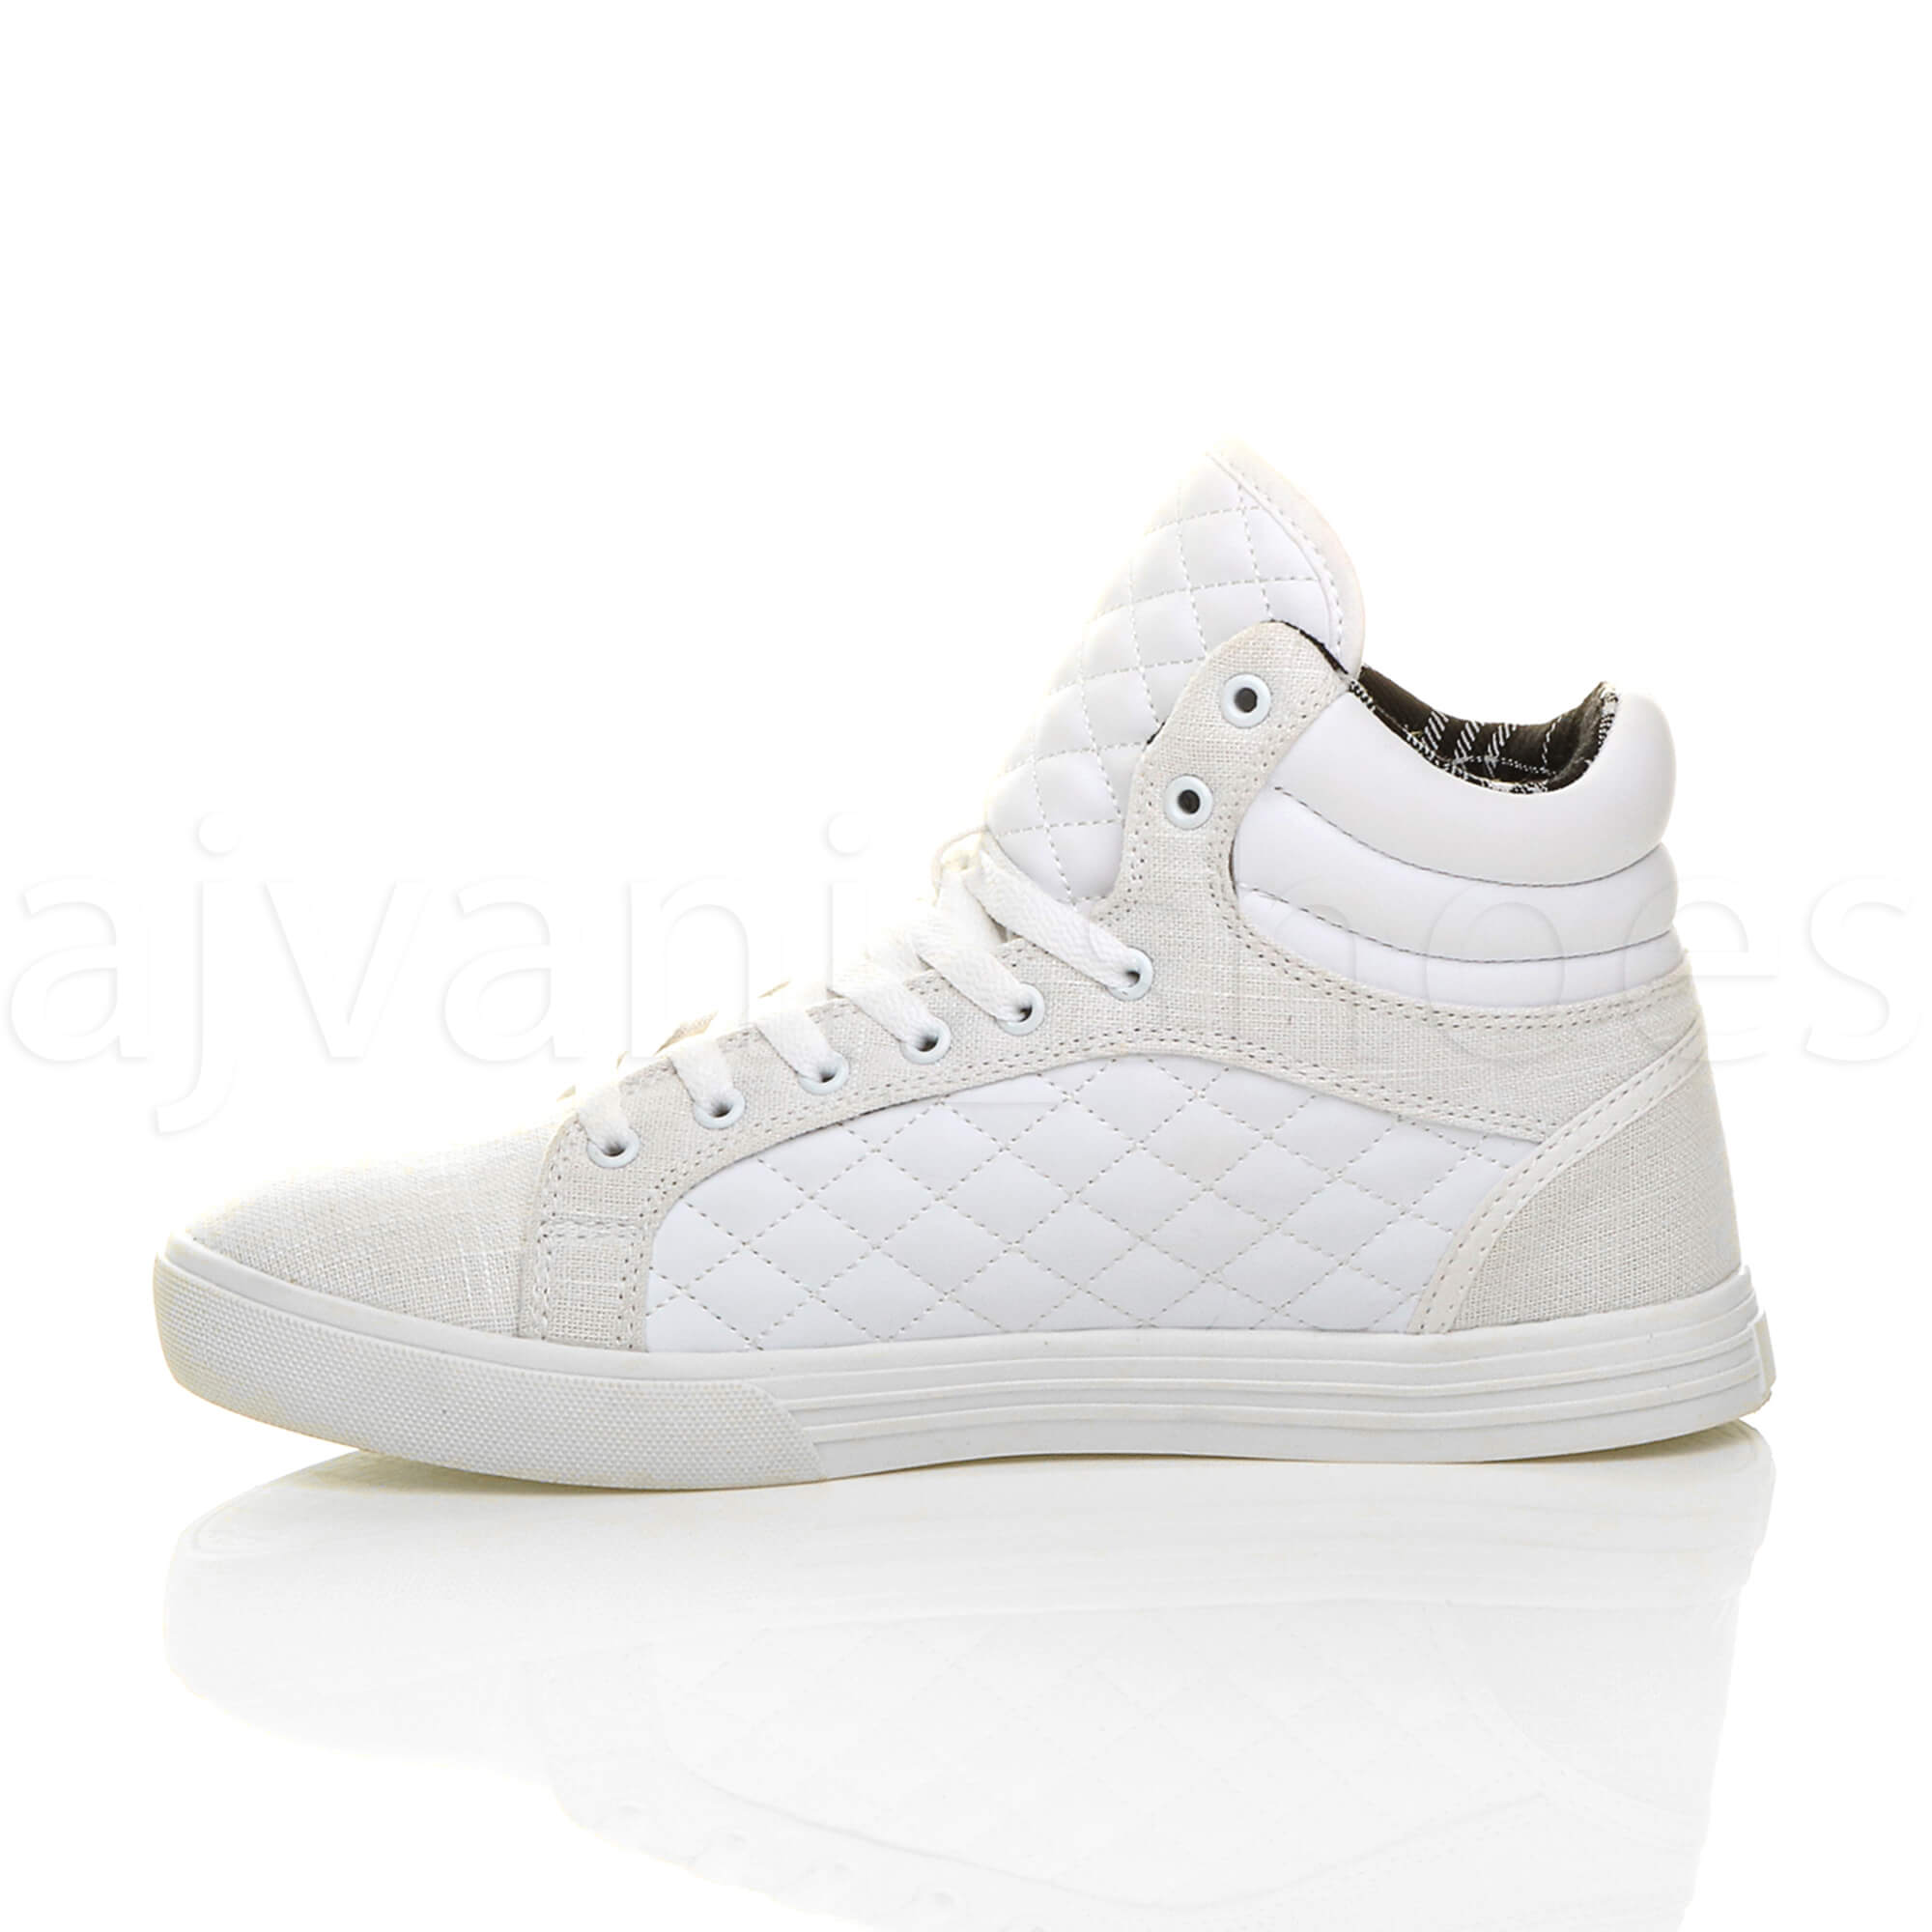 MENS-QUILTED-LACE-UP-FLAT-CASUAL-HI-HIGH-TOP-TRAINERS-SHOES-ANKLE-BOOTS-SIZE thumbnail 32